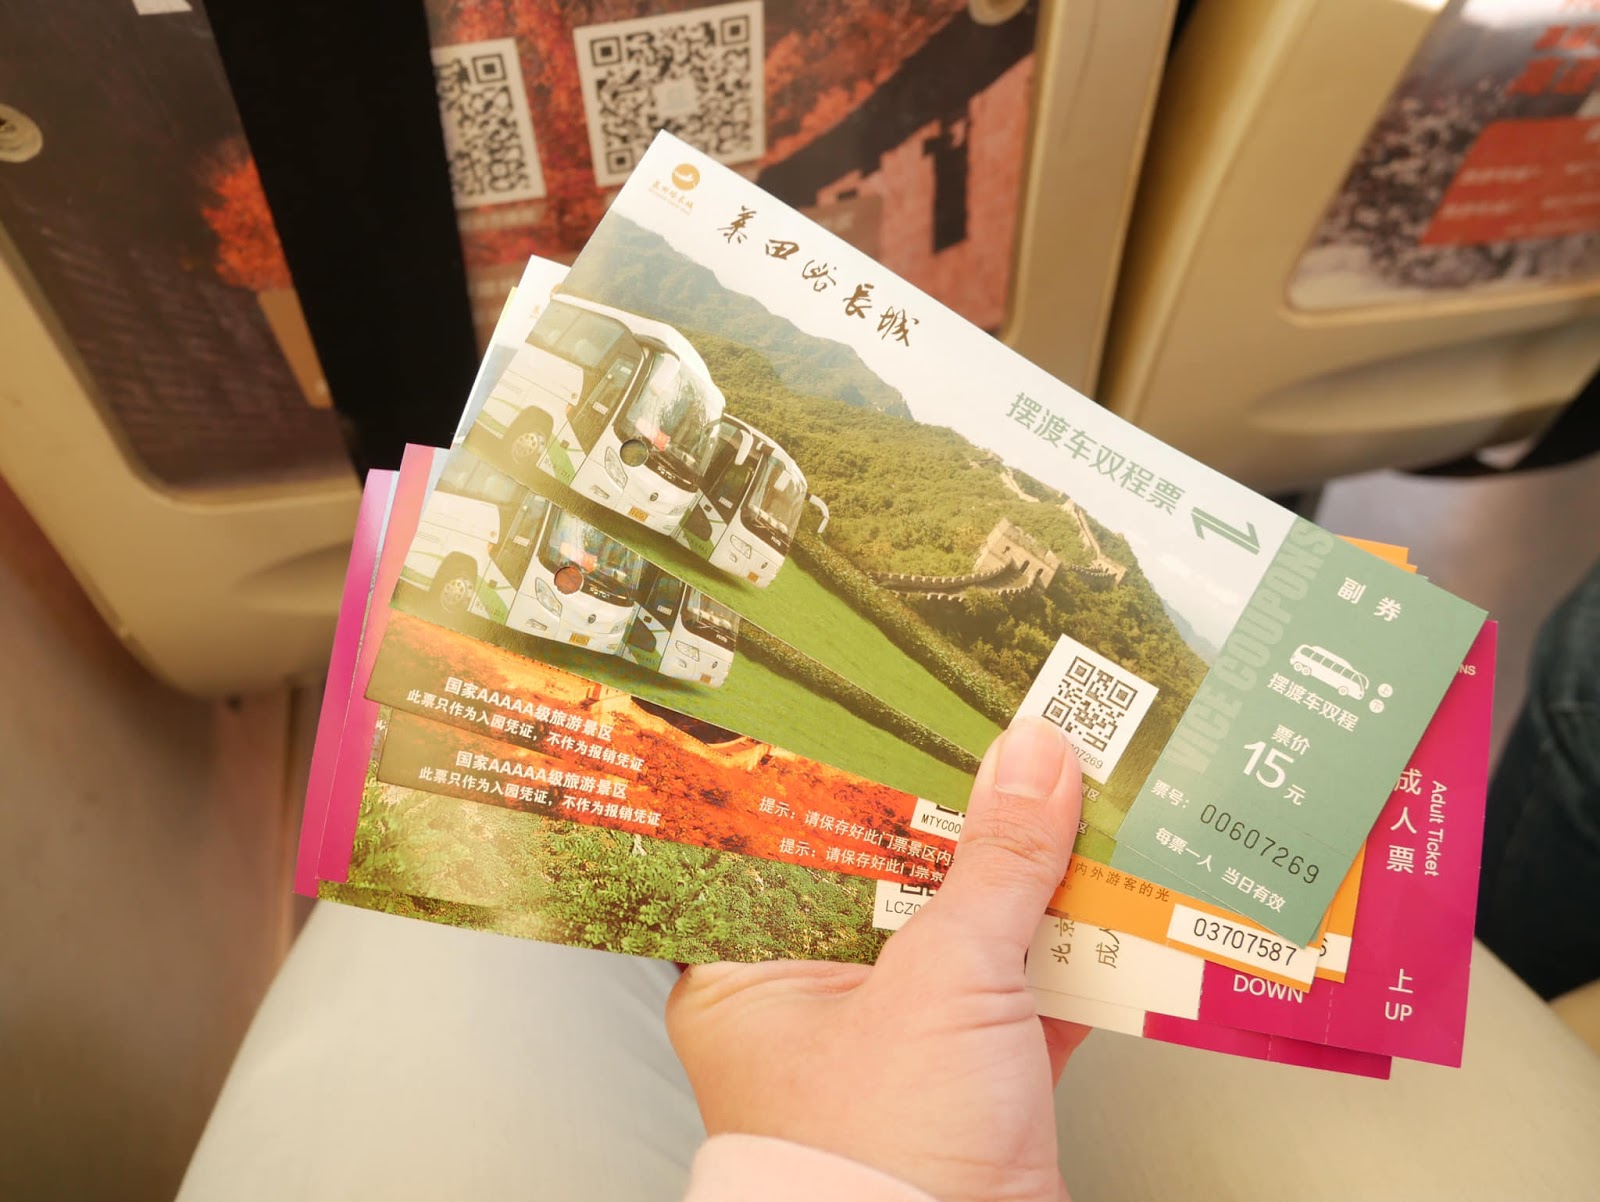 Entrance tickets to great wall of china - mutianyu